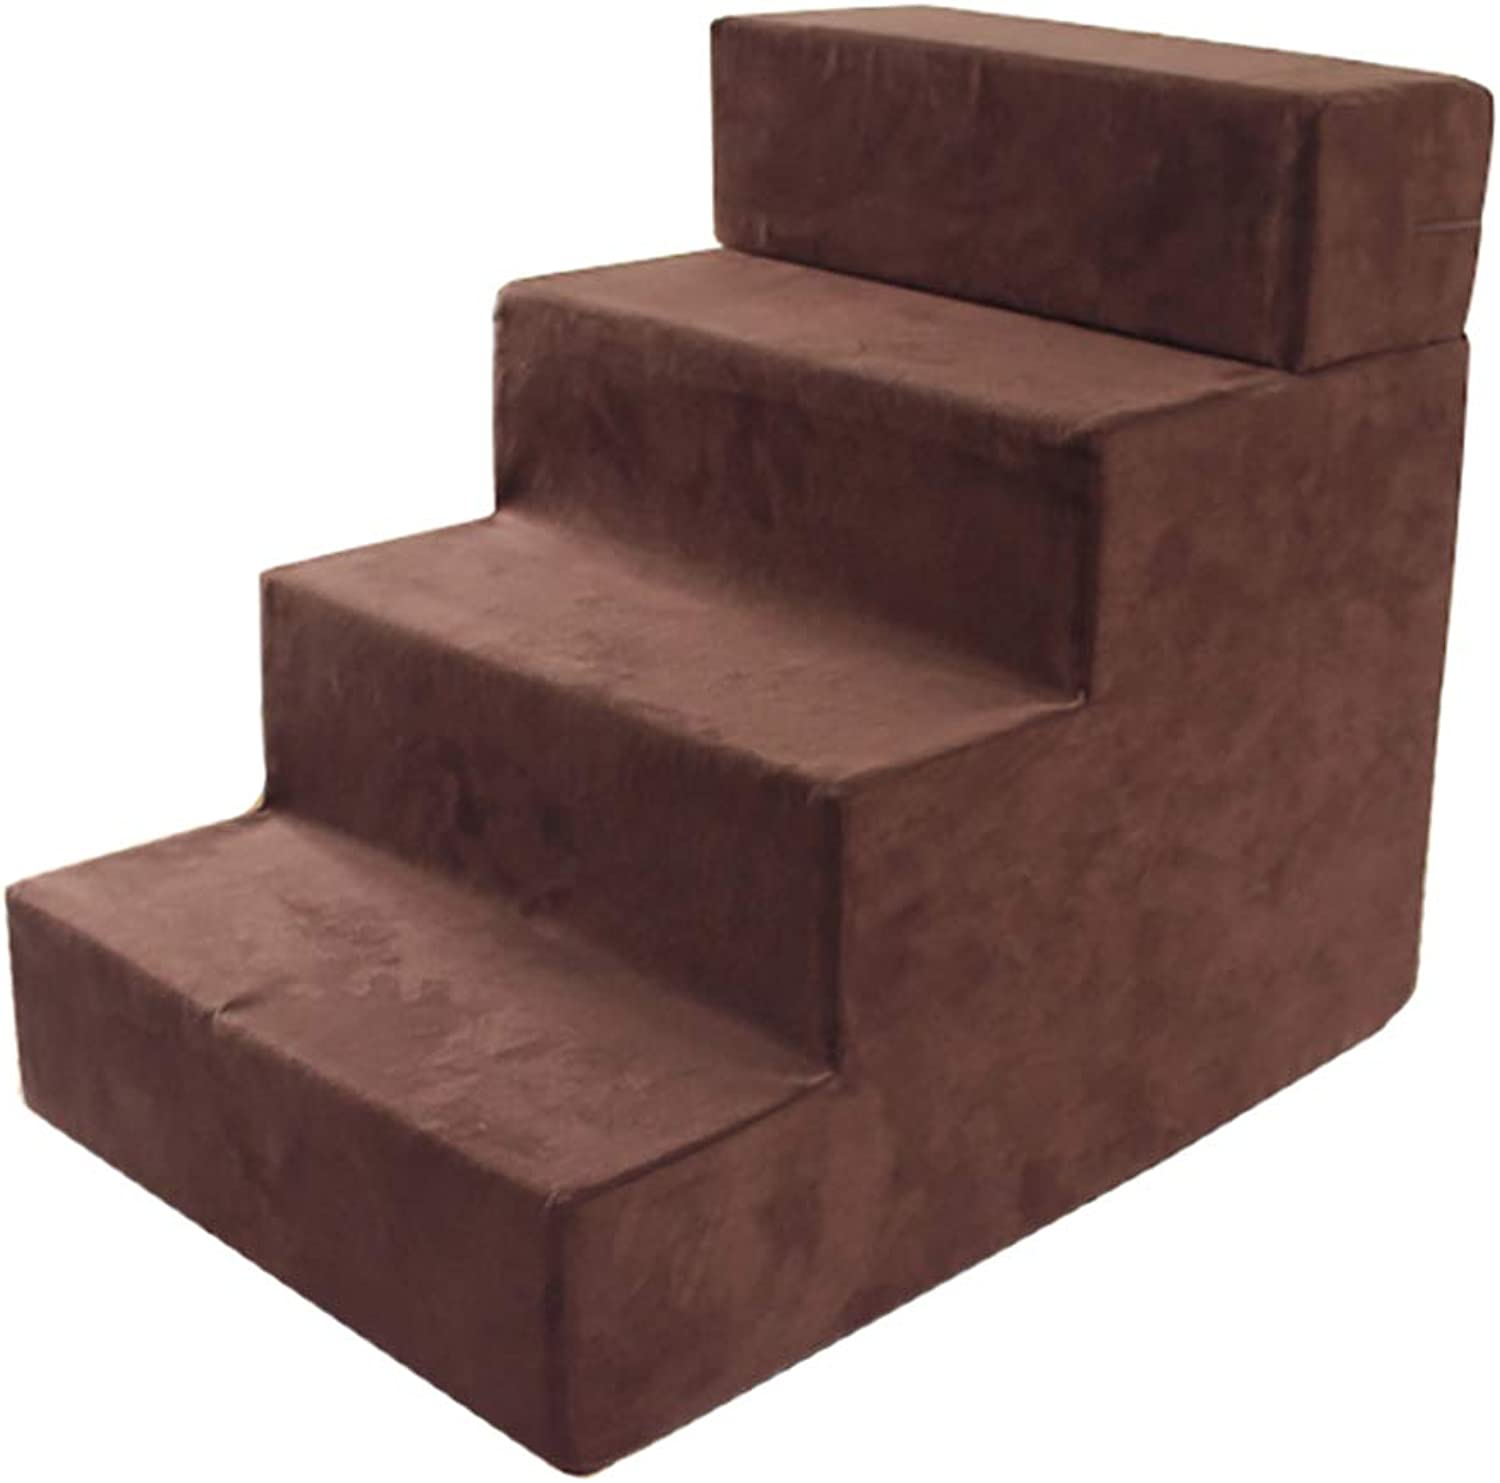 LXLA  Adjustable 4Steps Pet Stairs, For Dogs and Cats, Removable Washable, Coffee color, 60 × 40 × 50cm